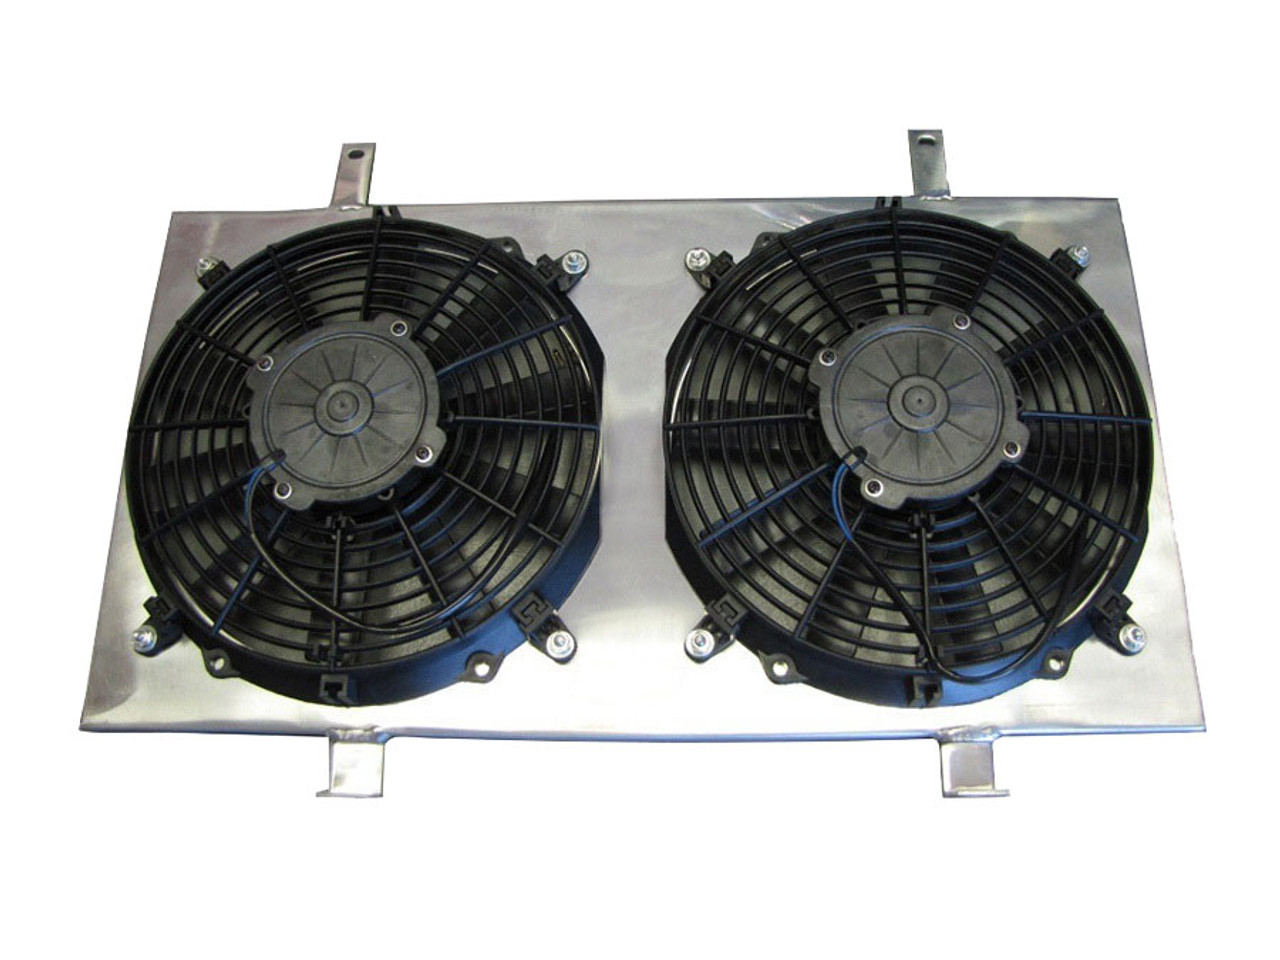 isr performance radiator fan shroud kit - nissan 240sx s13 89-94 ka24 -  enjuku racing parts, llc